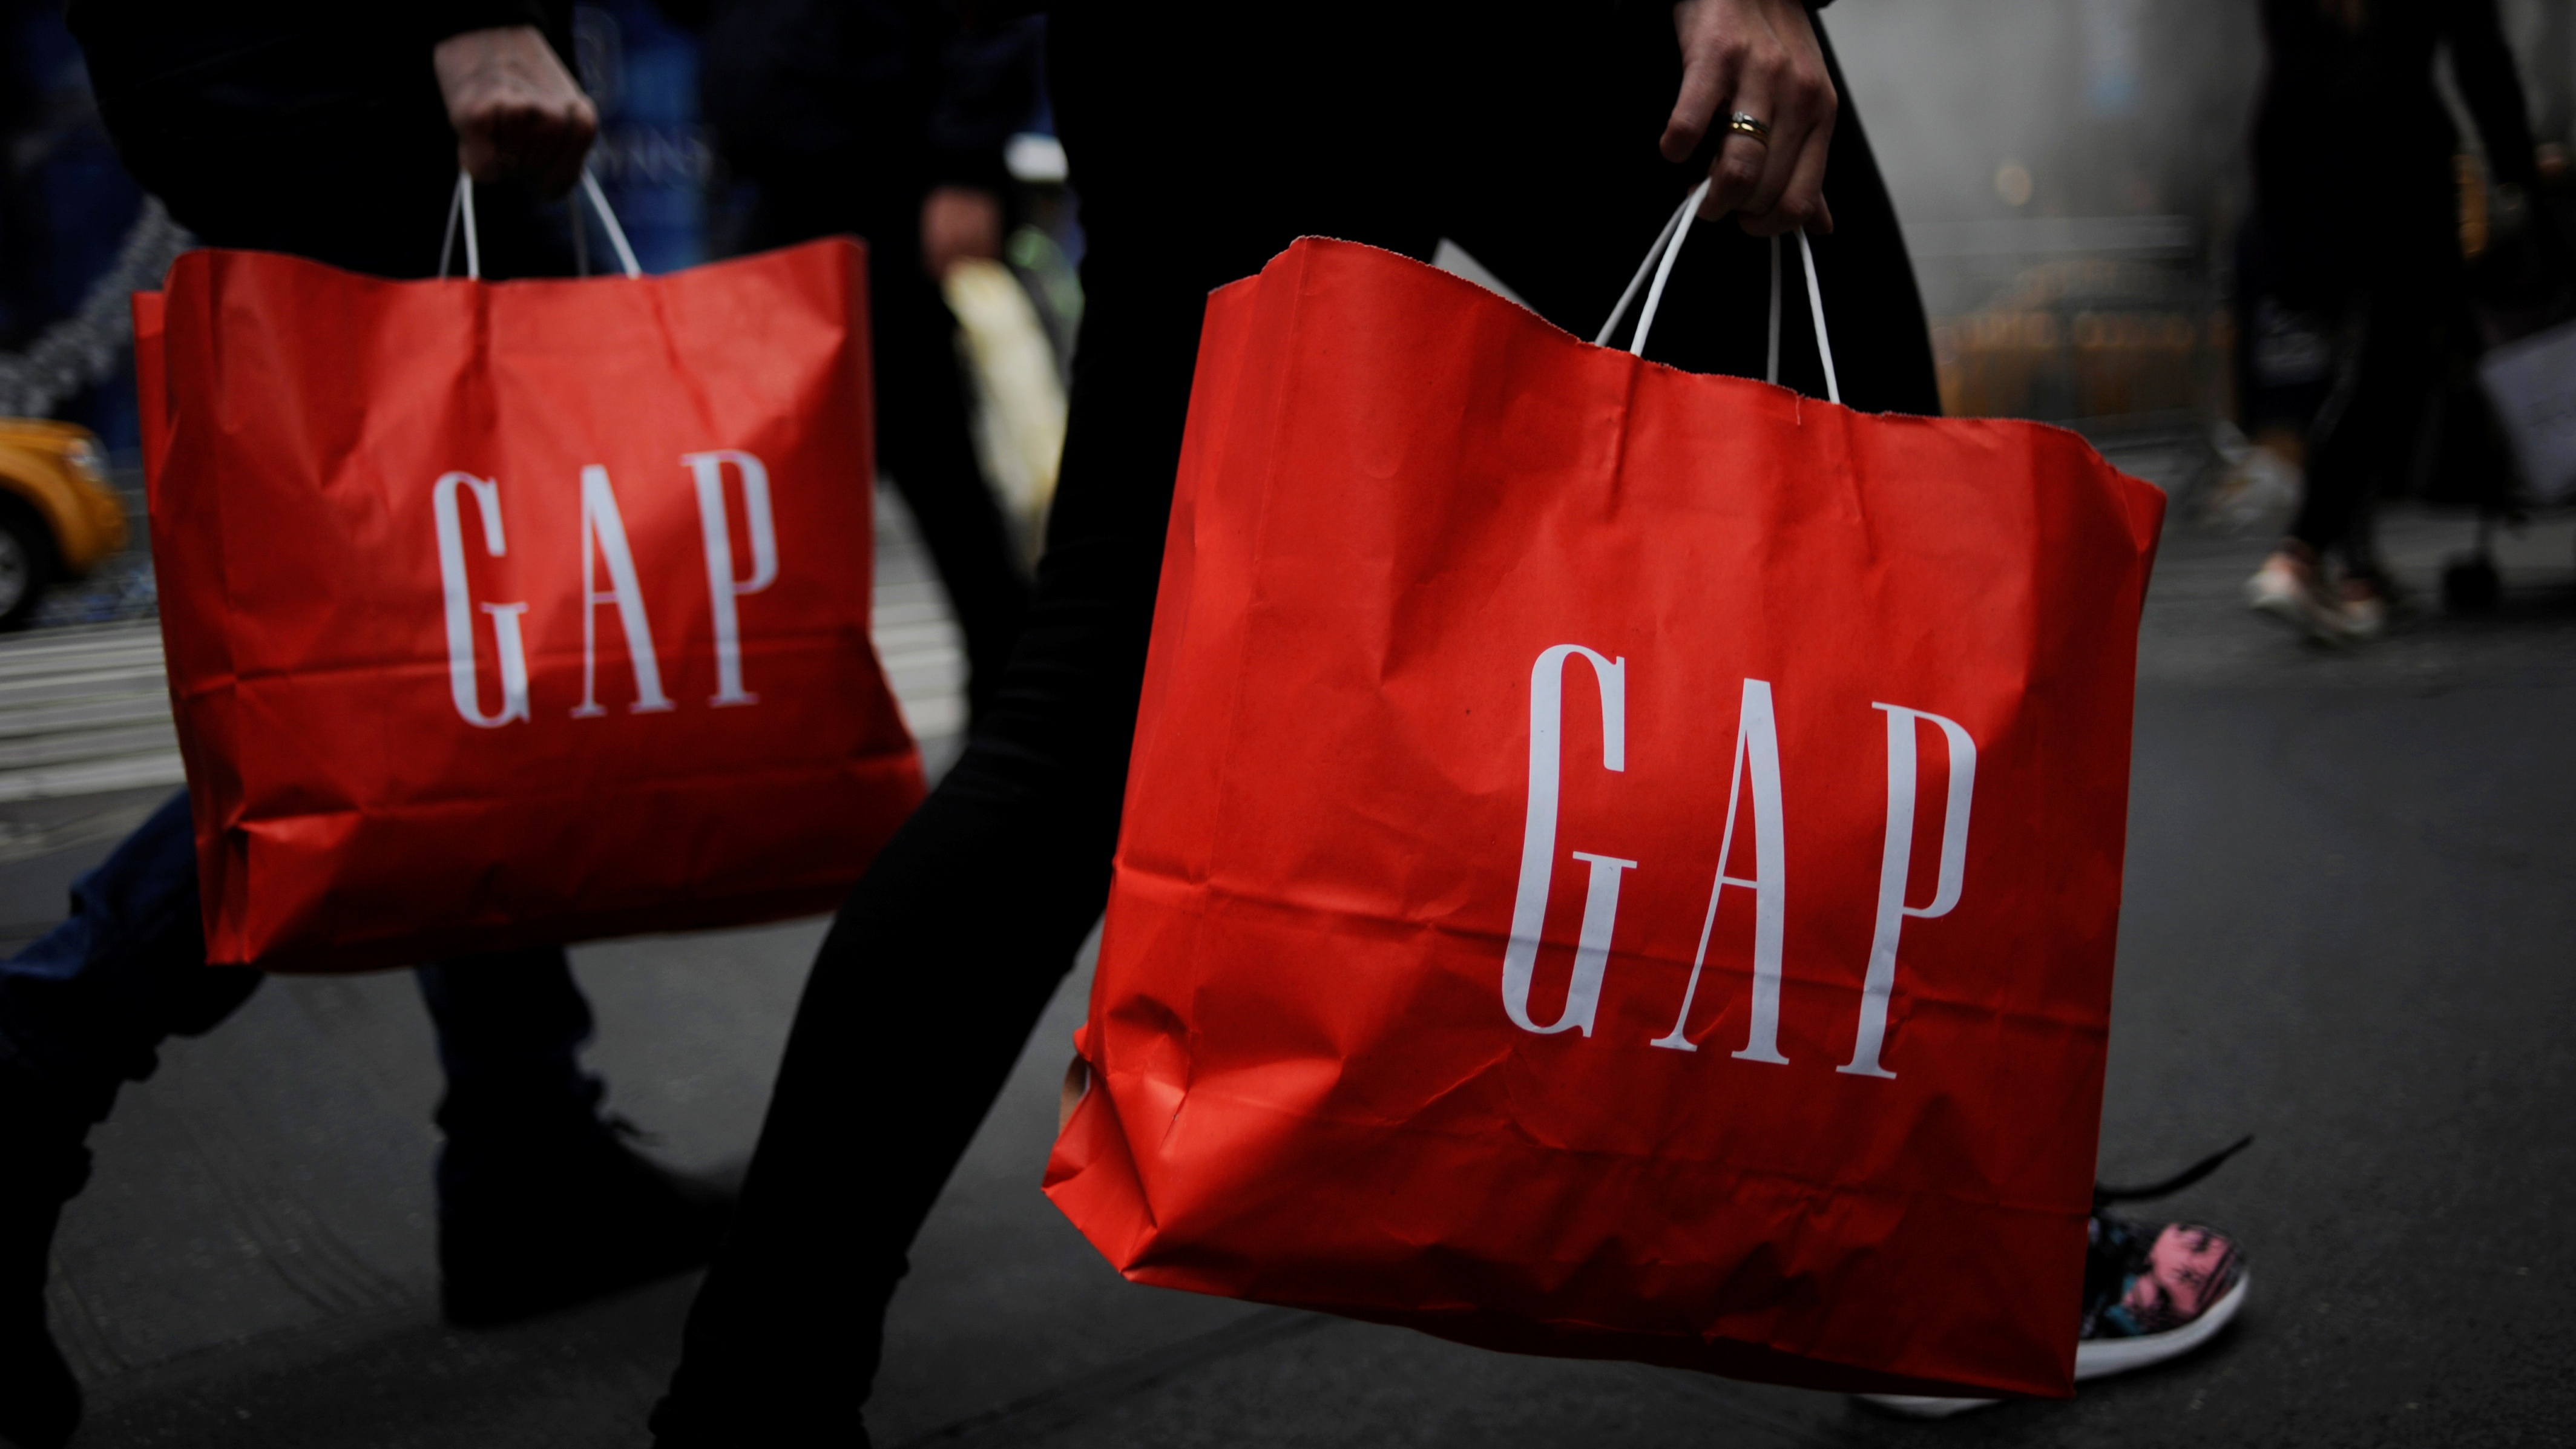 Shoppers carry bags from a Gap store as they walk along Fifth Avenue in the Manhattan borough of New York, U.S., November 20, 2016. REUTERS/Mark Kauzlarich